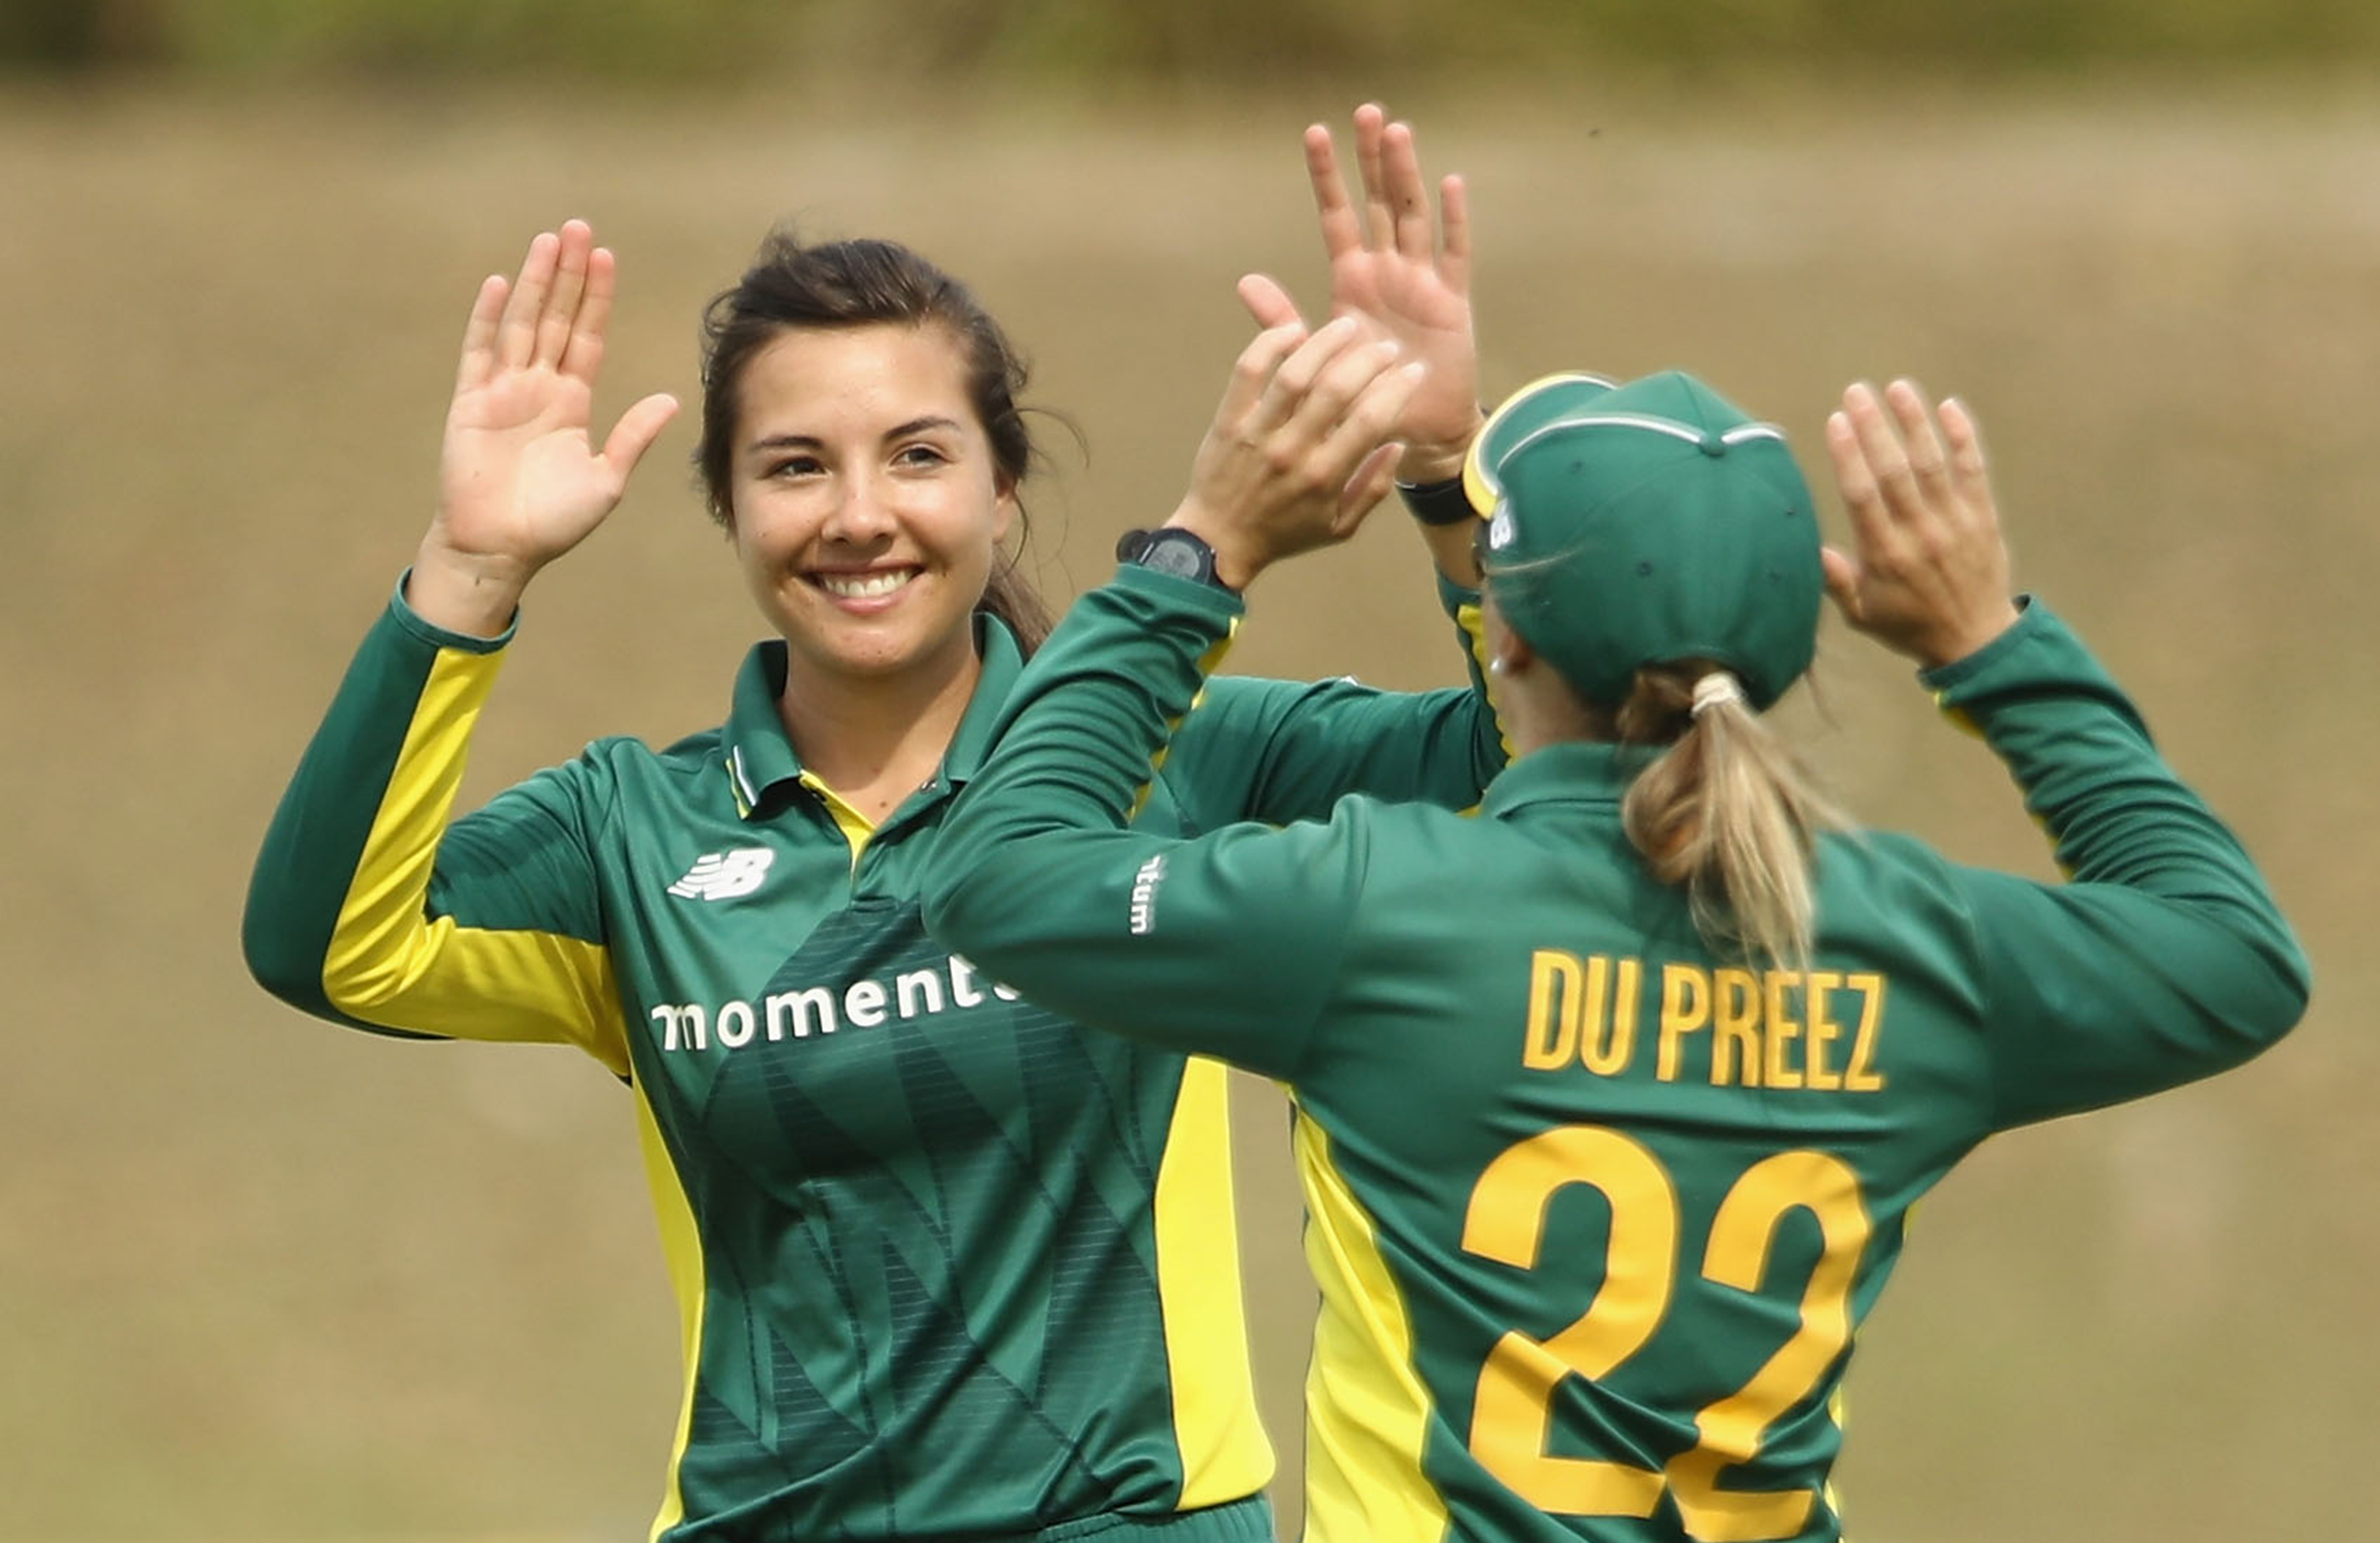 Women's World Cup preview: South Africa | cricket.com.au